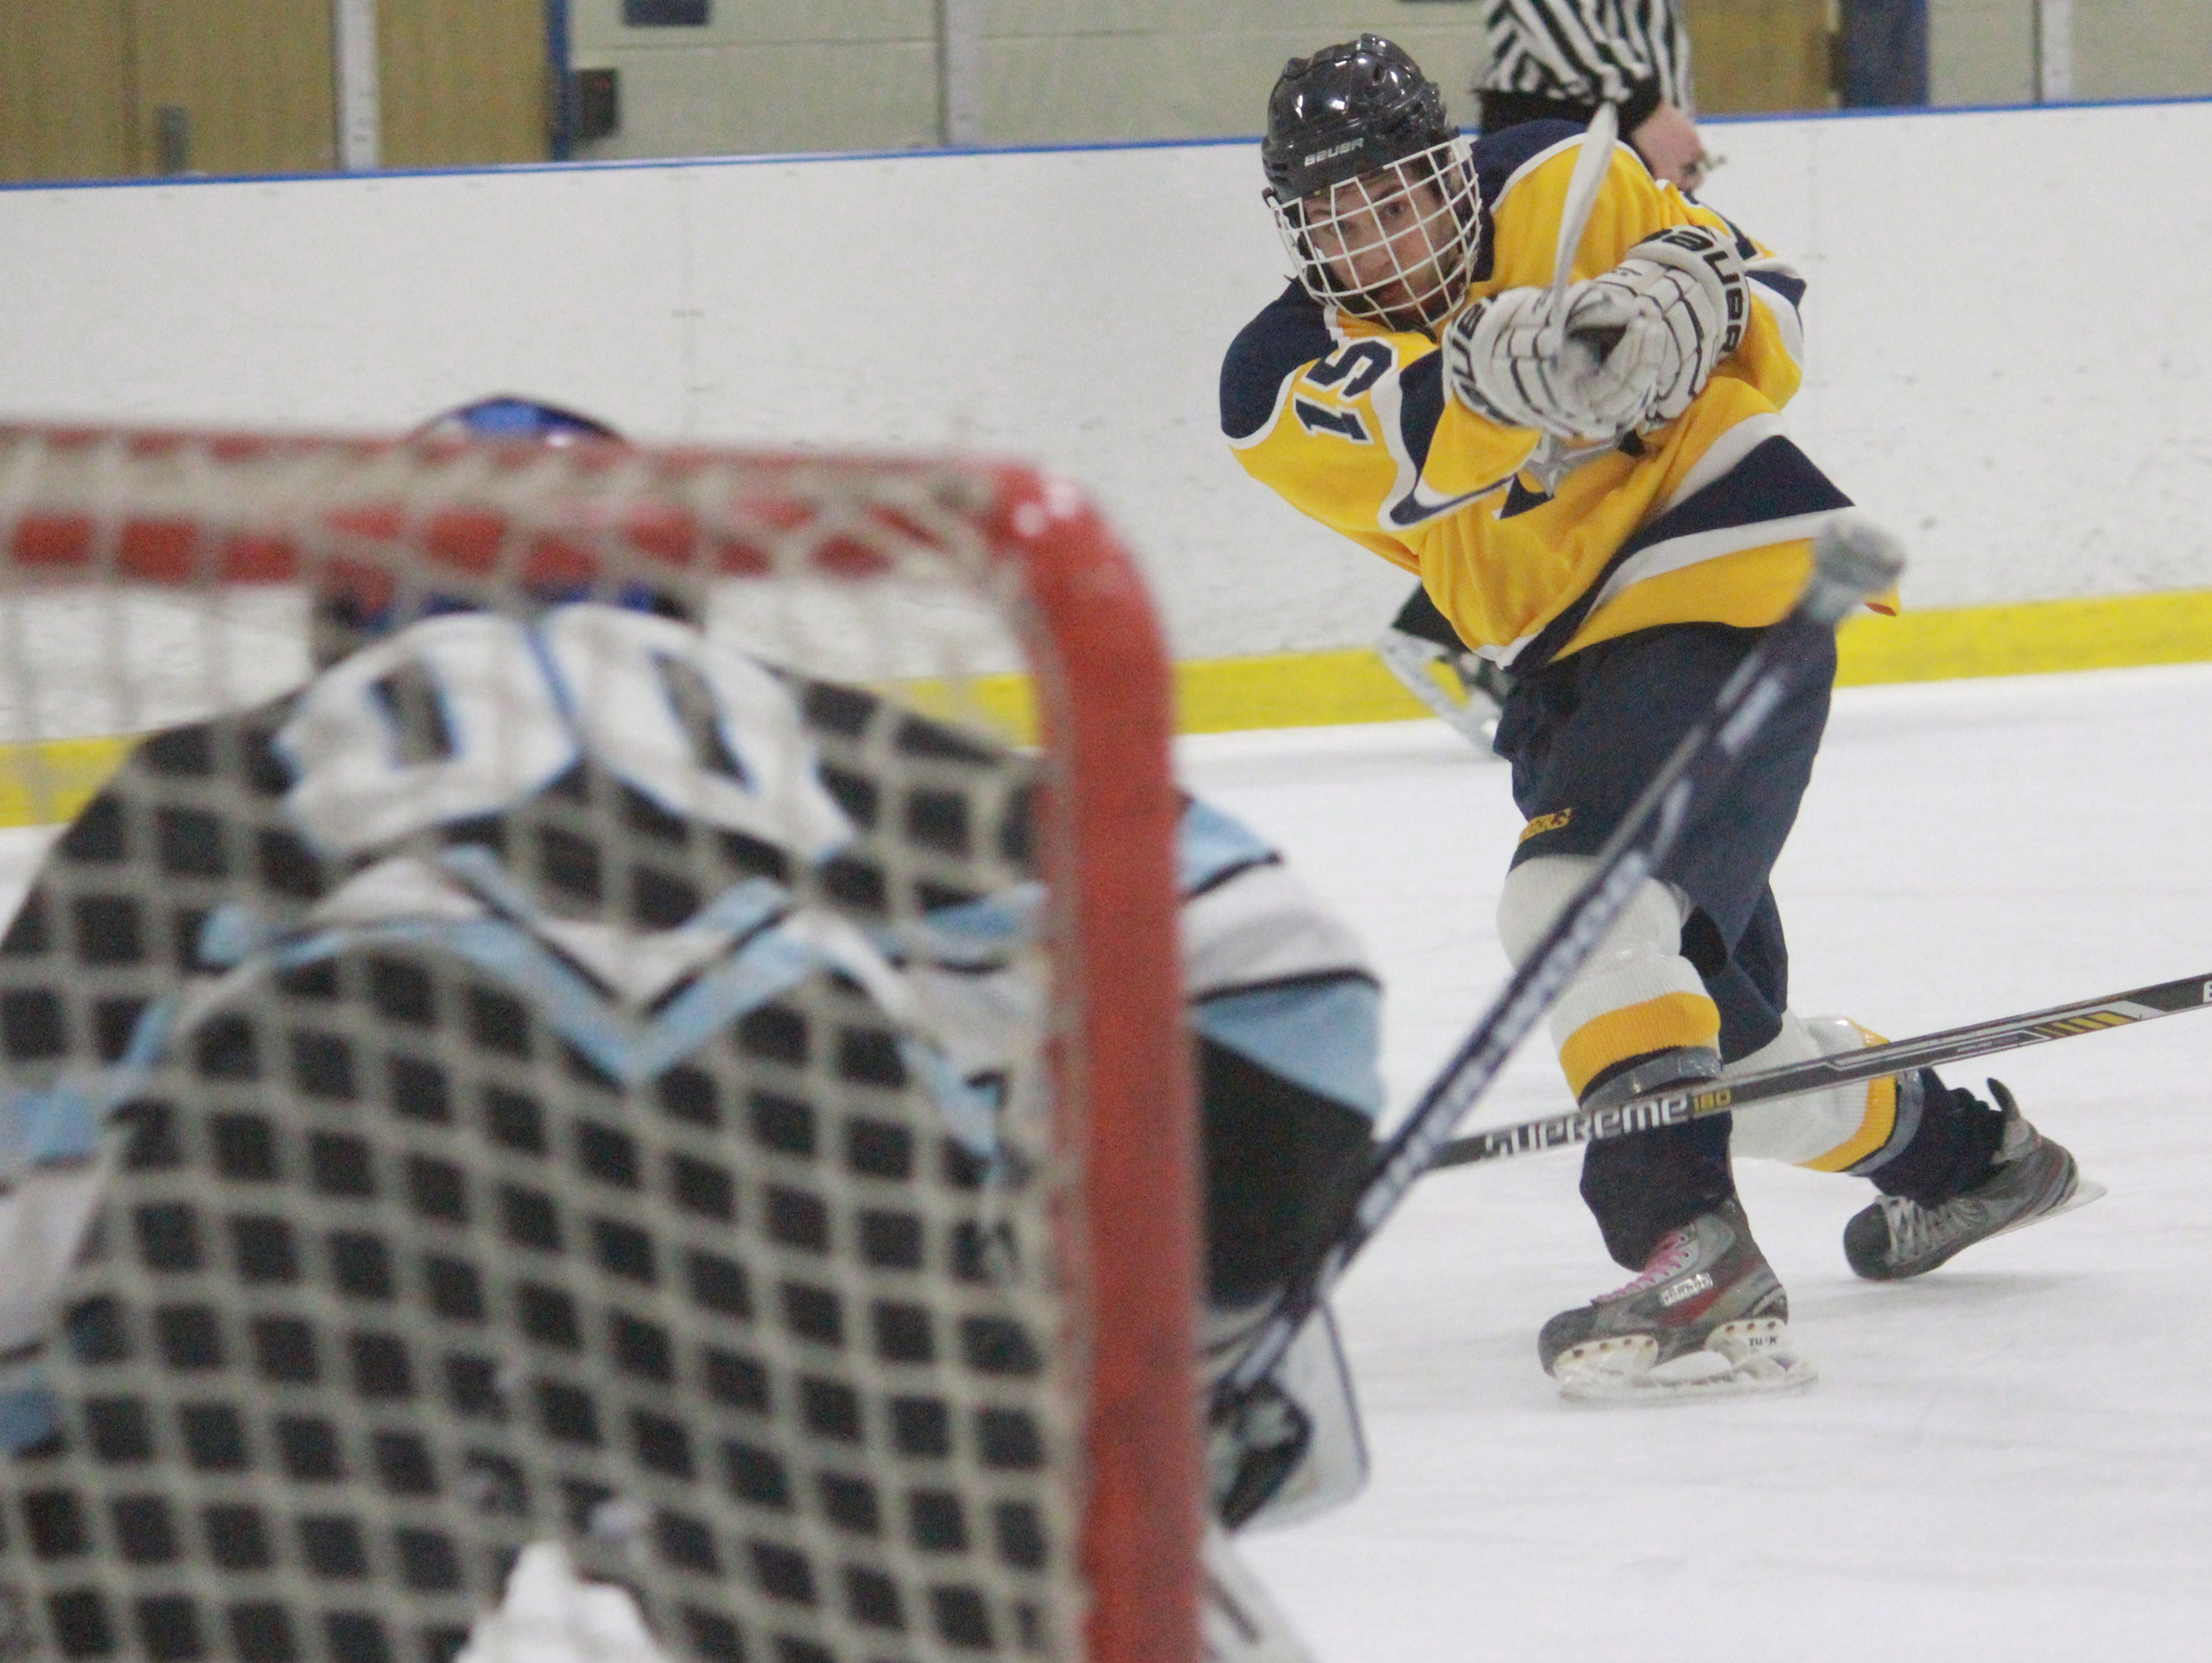 Nick Pica fires a shot on net and will lead Toms River North into 2015-16.